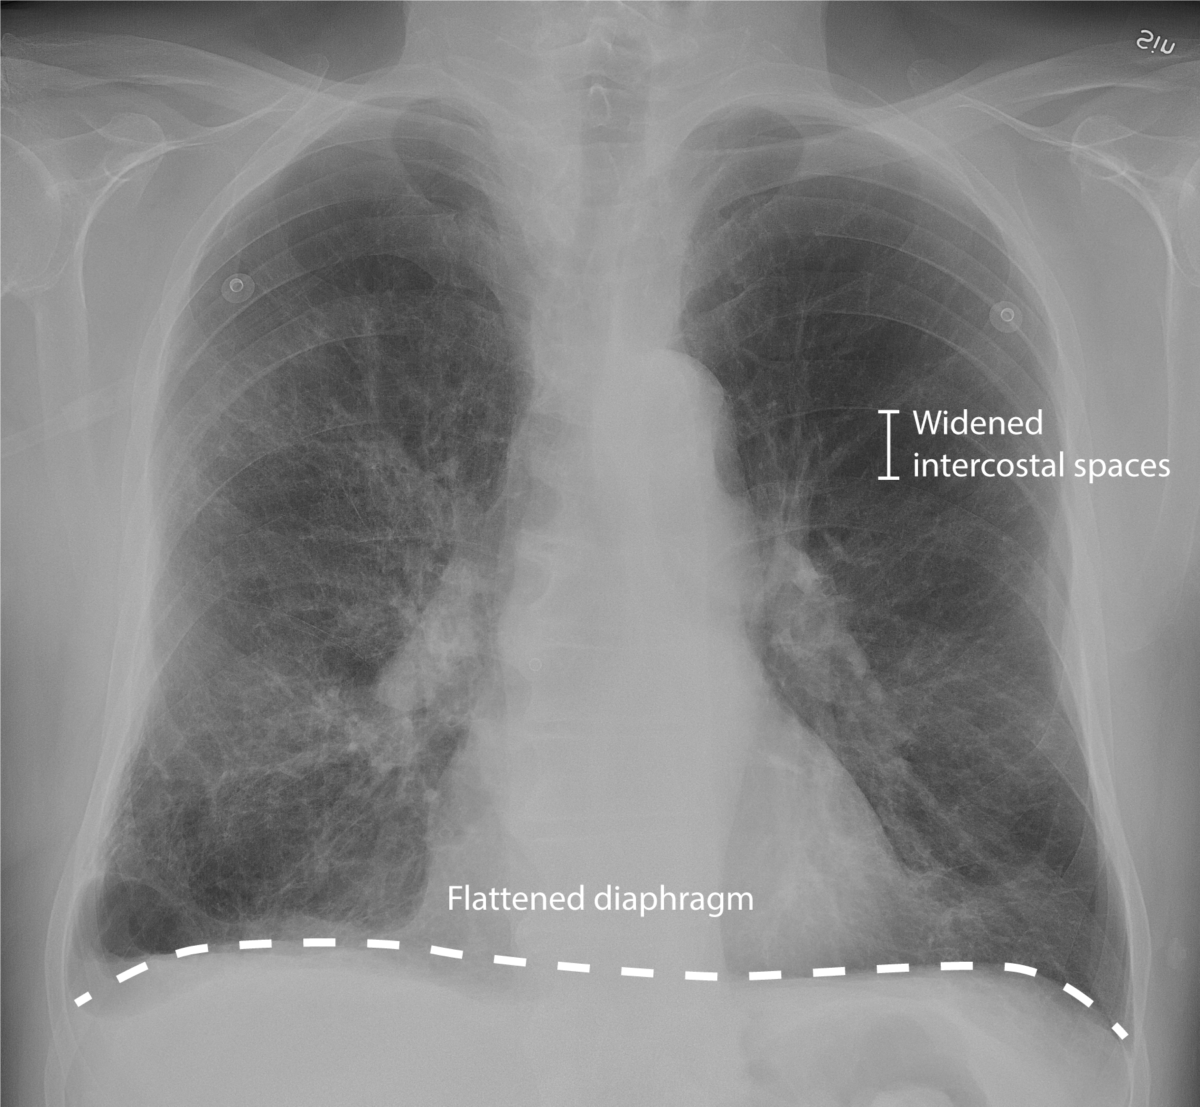 Chest X-ray of Chronic obstructive pulmonary disease (COPD)